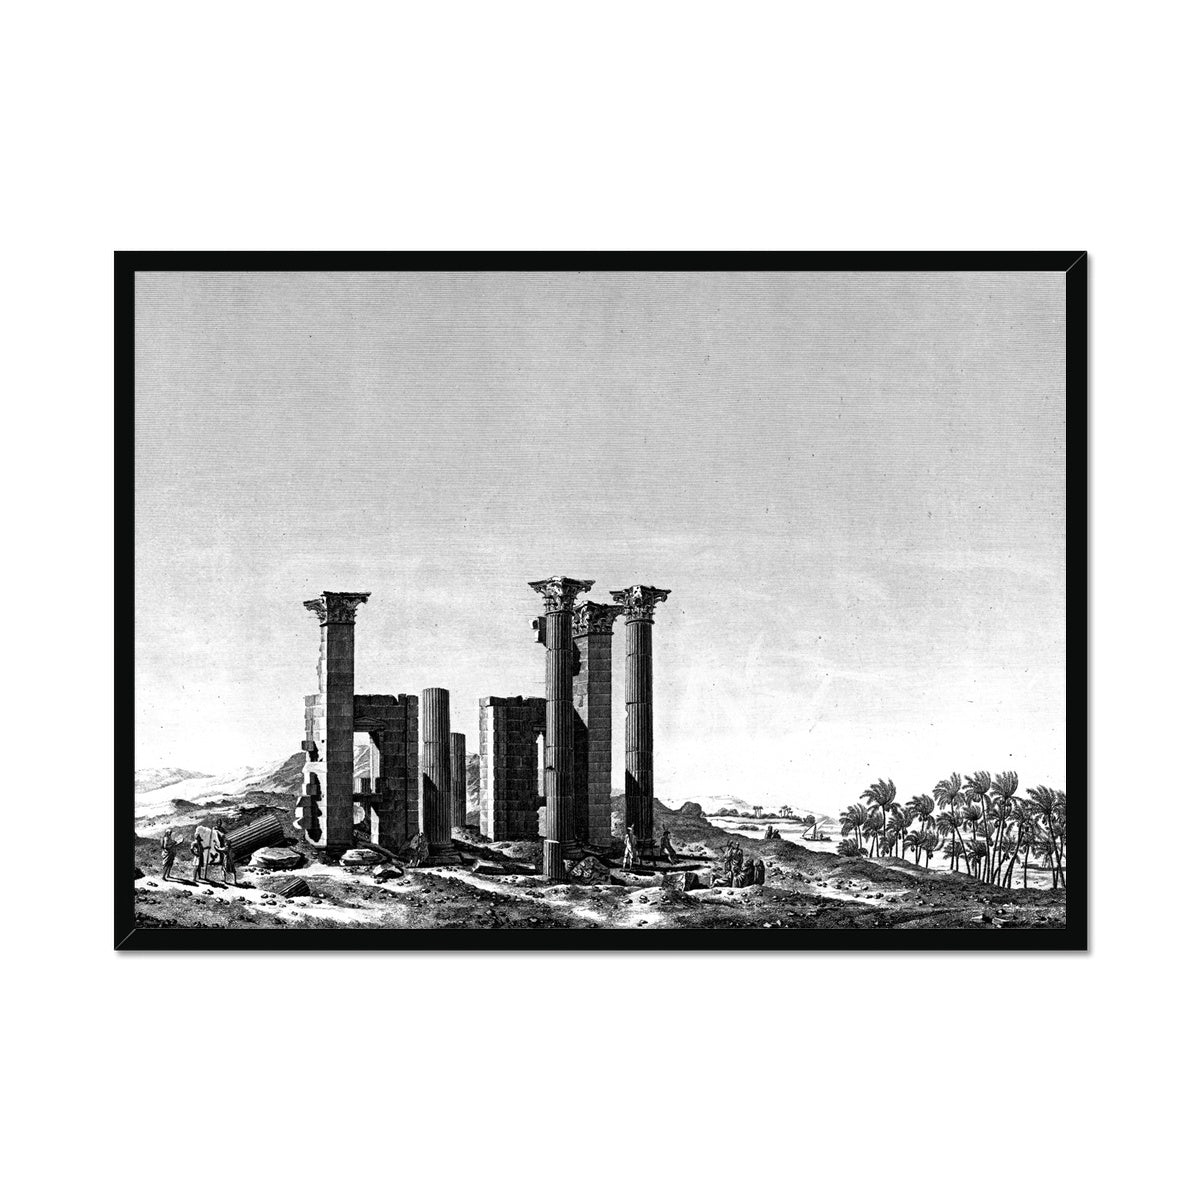 Theater Portico - Antinoöpolis Egypt -  Framed Print